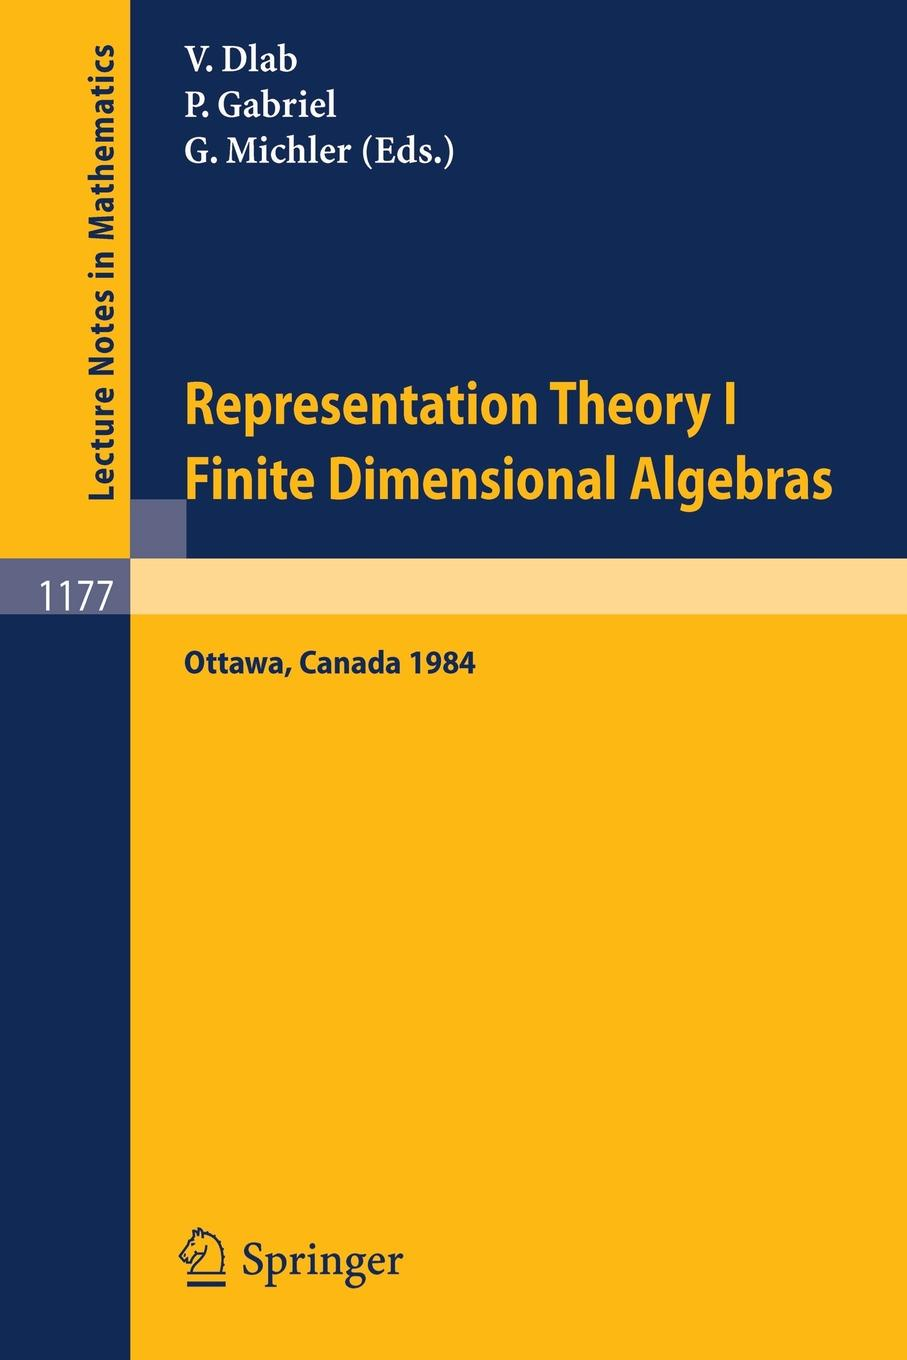 Representation Theory I. Proceedings of the Fourth International Conference on Representations of Algebras, held in Ottawa, Canada, August 16-25, 1984. Finite Dimensional Algebras цена и фото